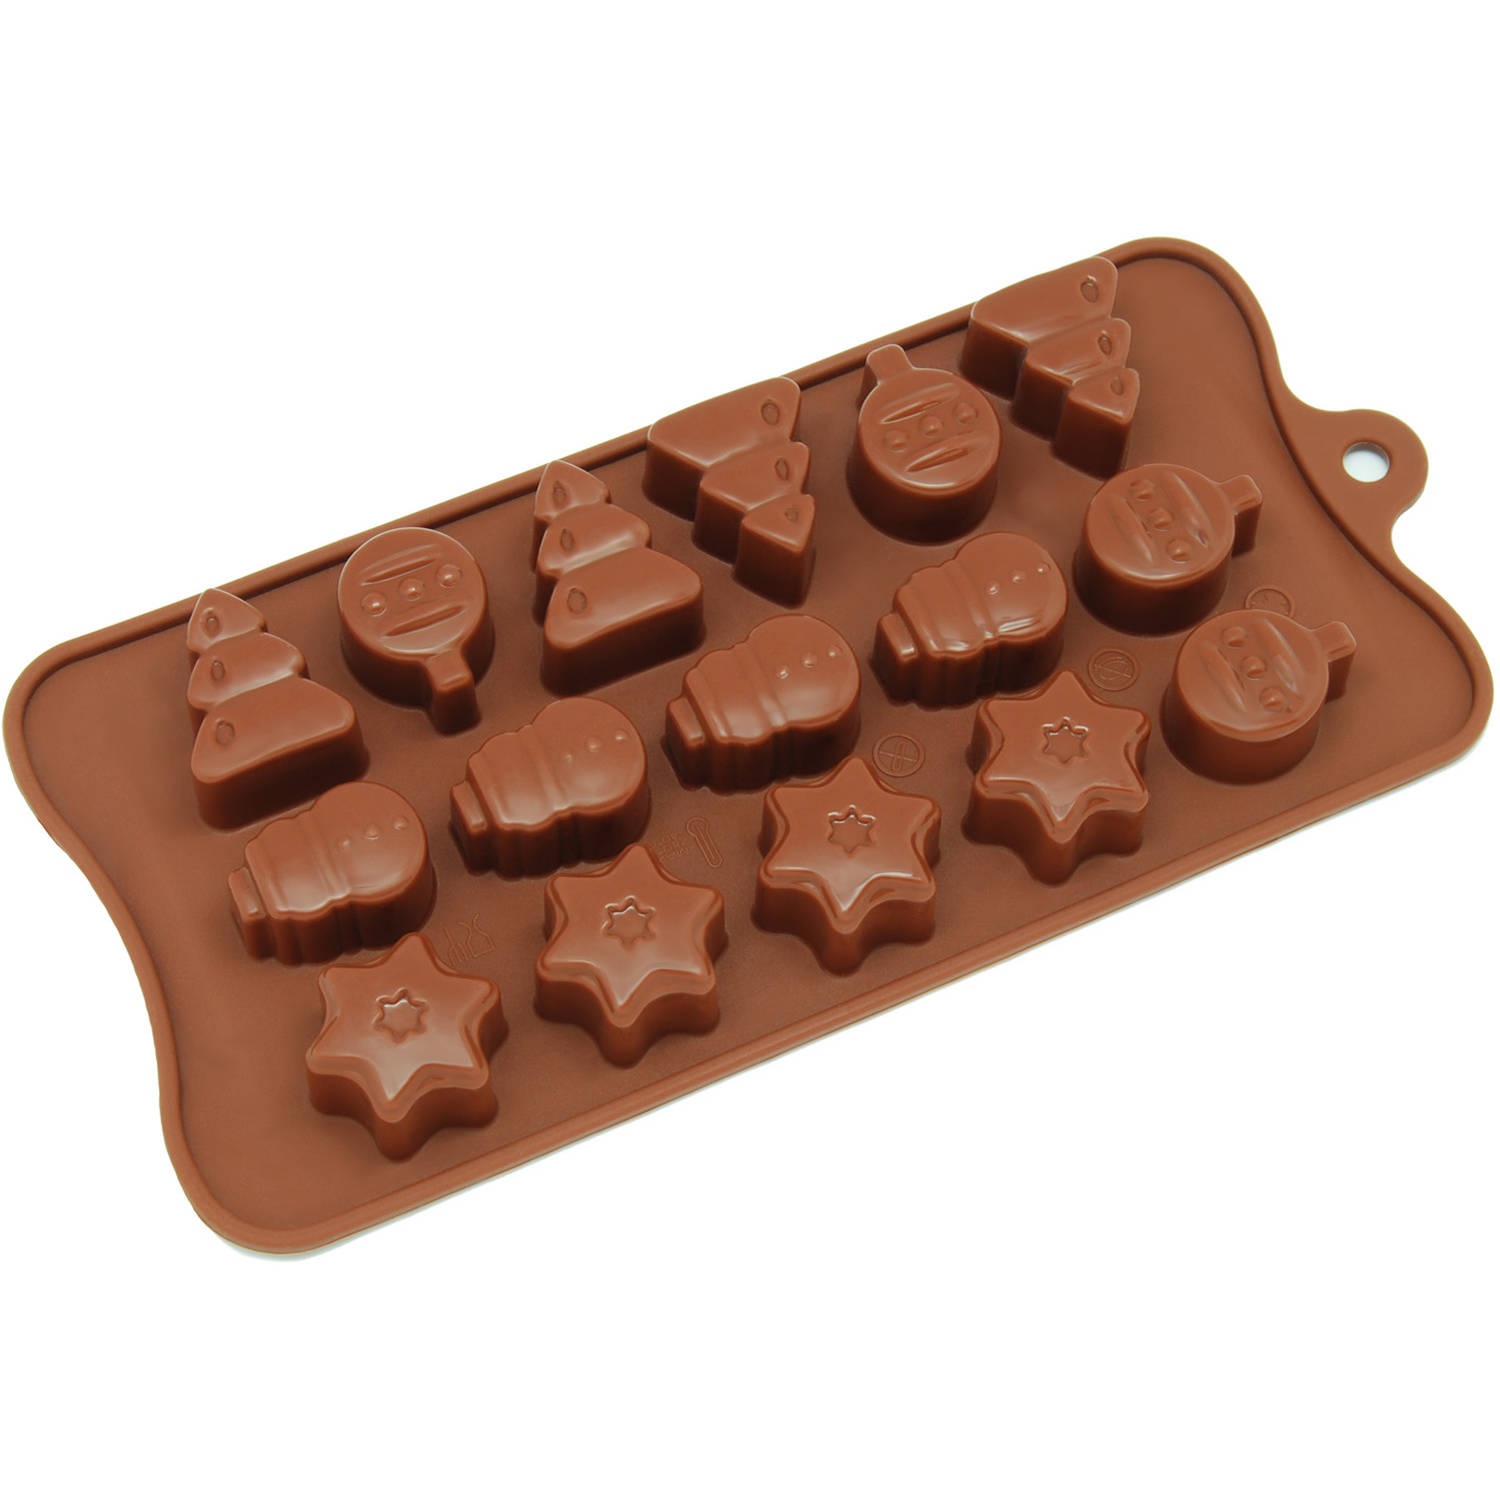 Freshware 16-Cavity Christmas Tree, Ornament and Star Silicone Mold for Chocolate, Candy and Gummy, CB-604BR